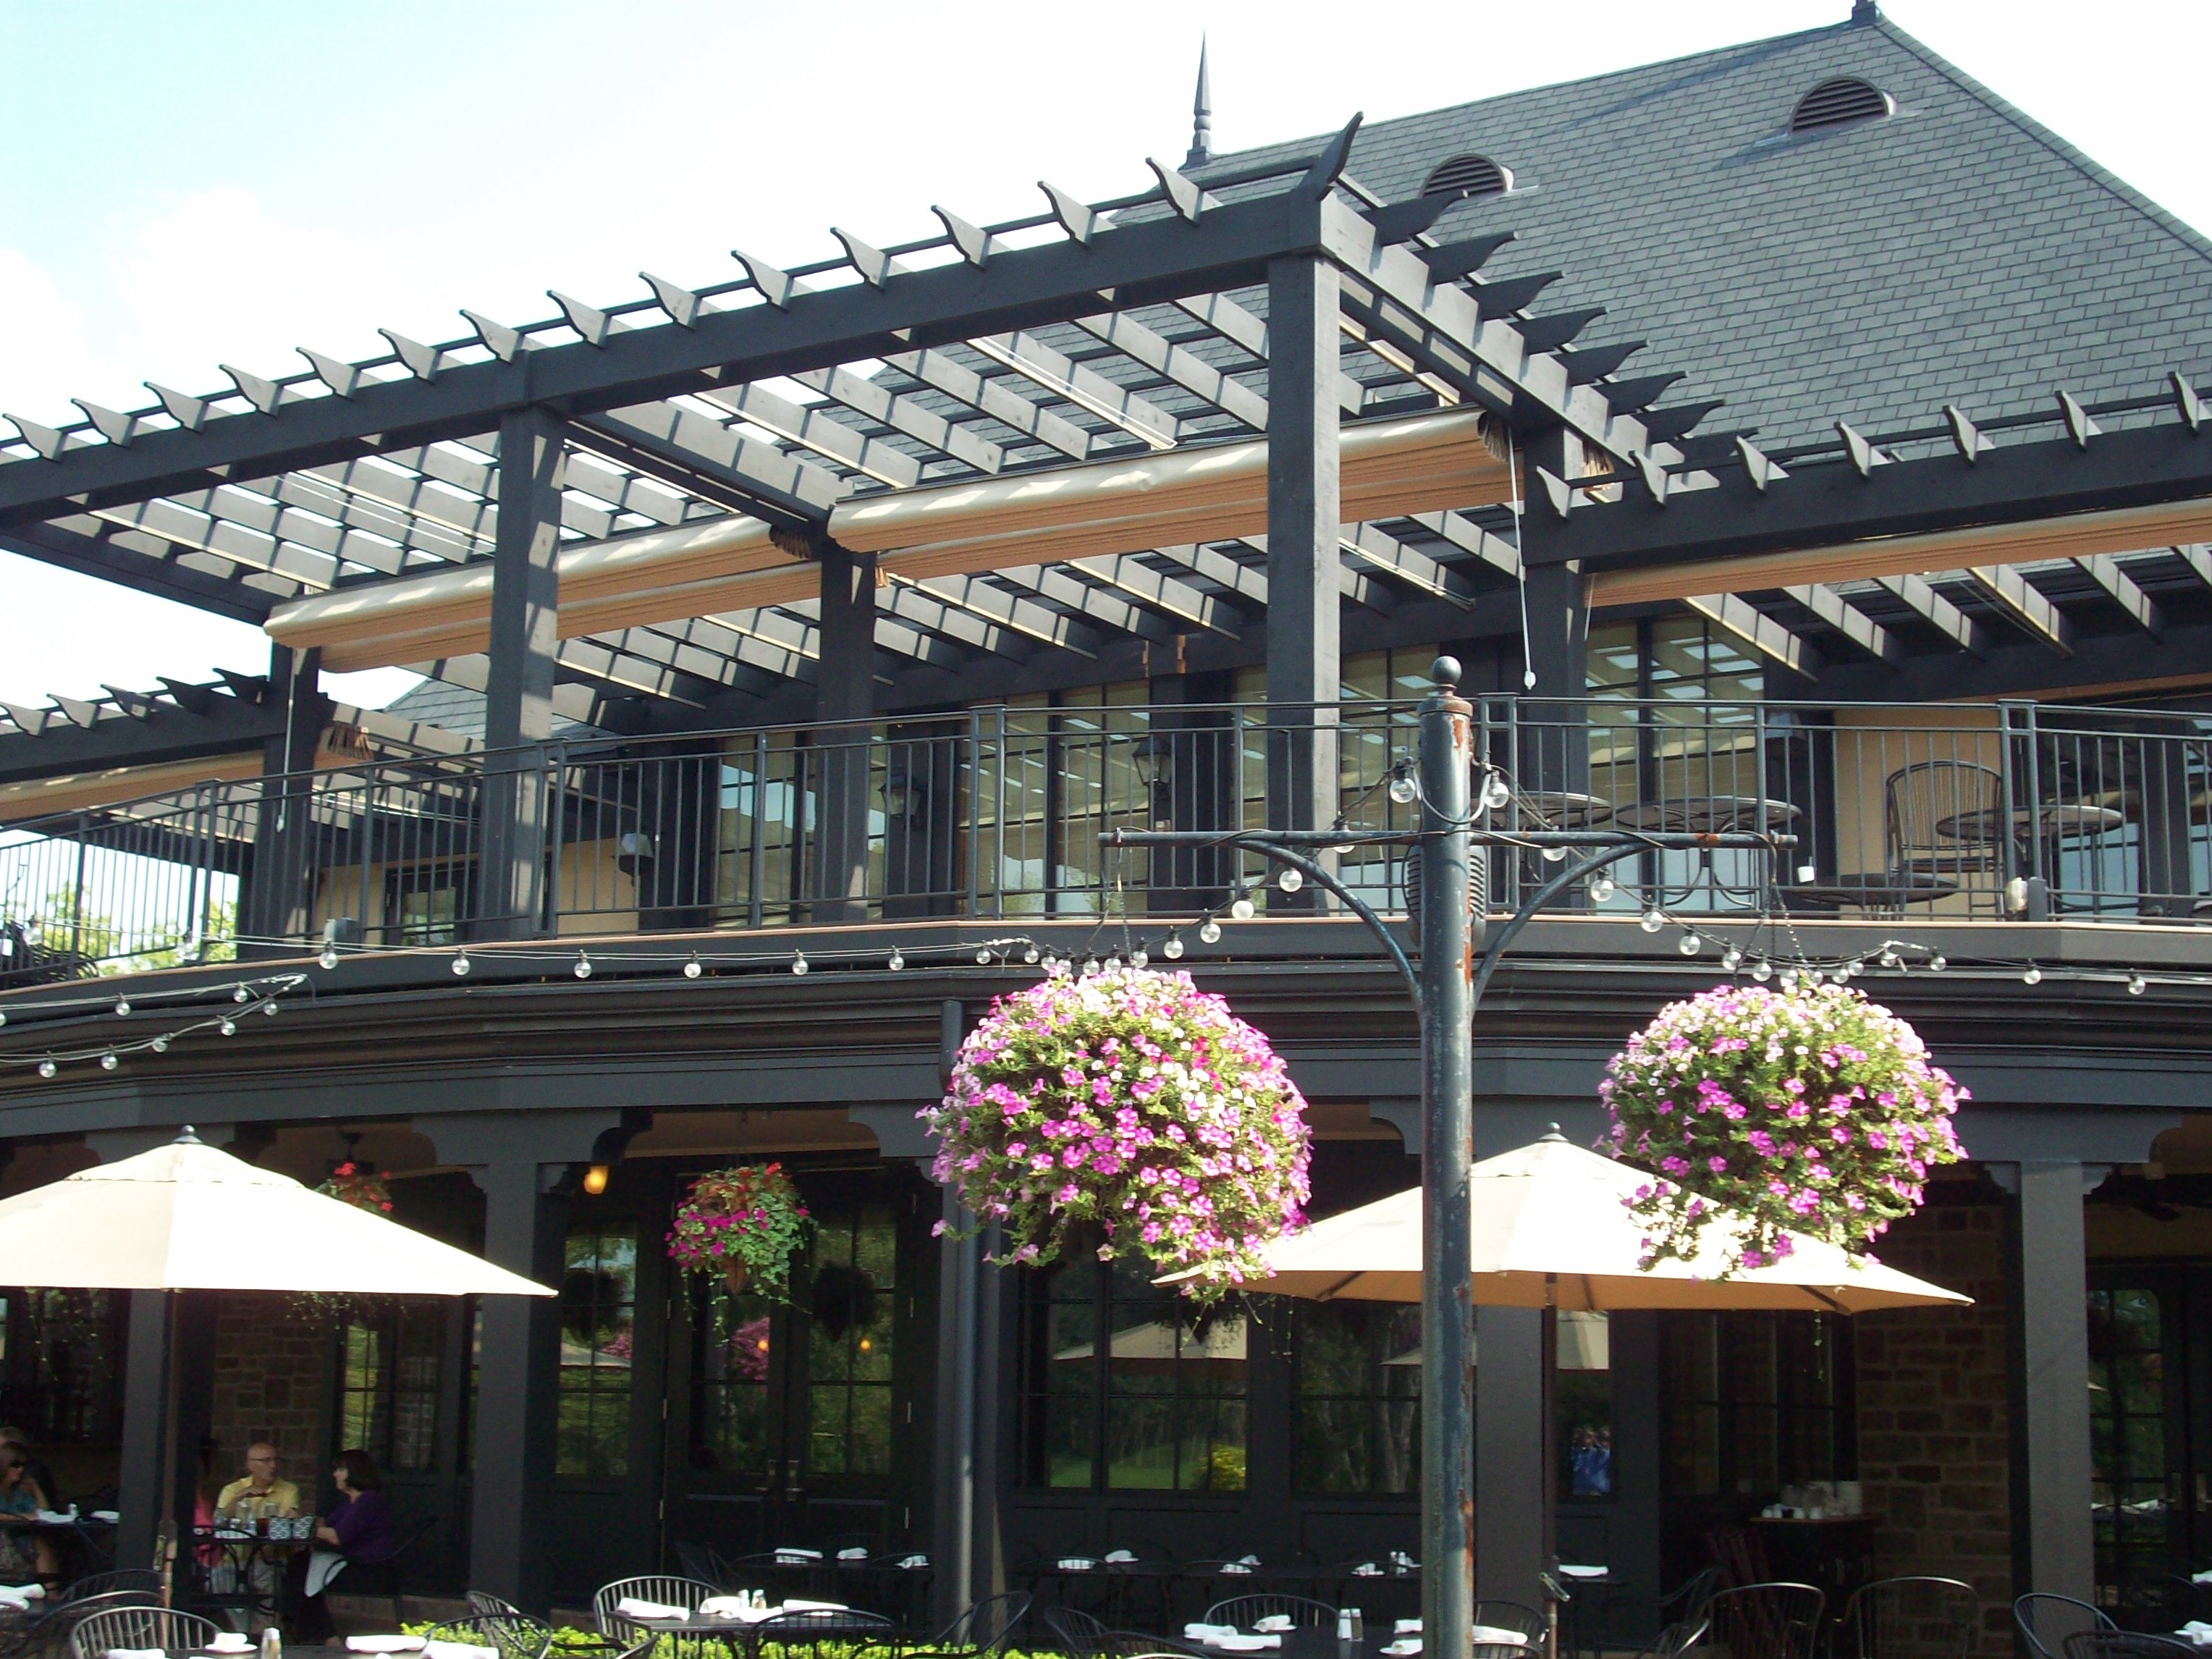 Retractable Canopy | ShadePro North America's Roll Shutter ...